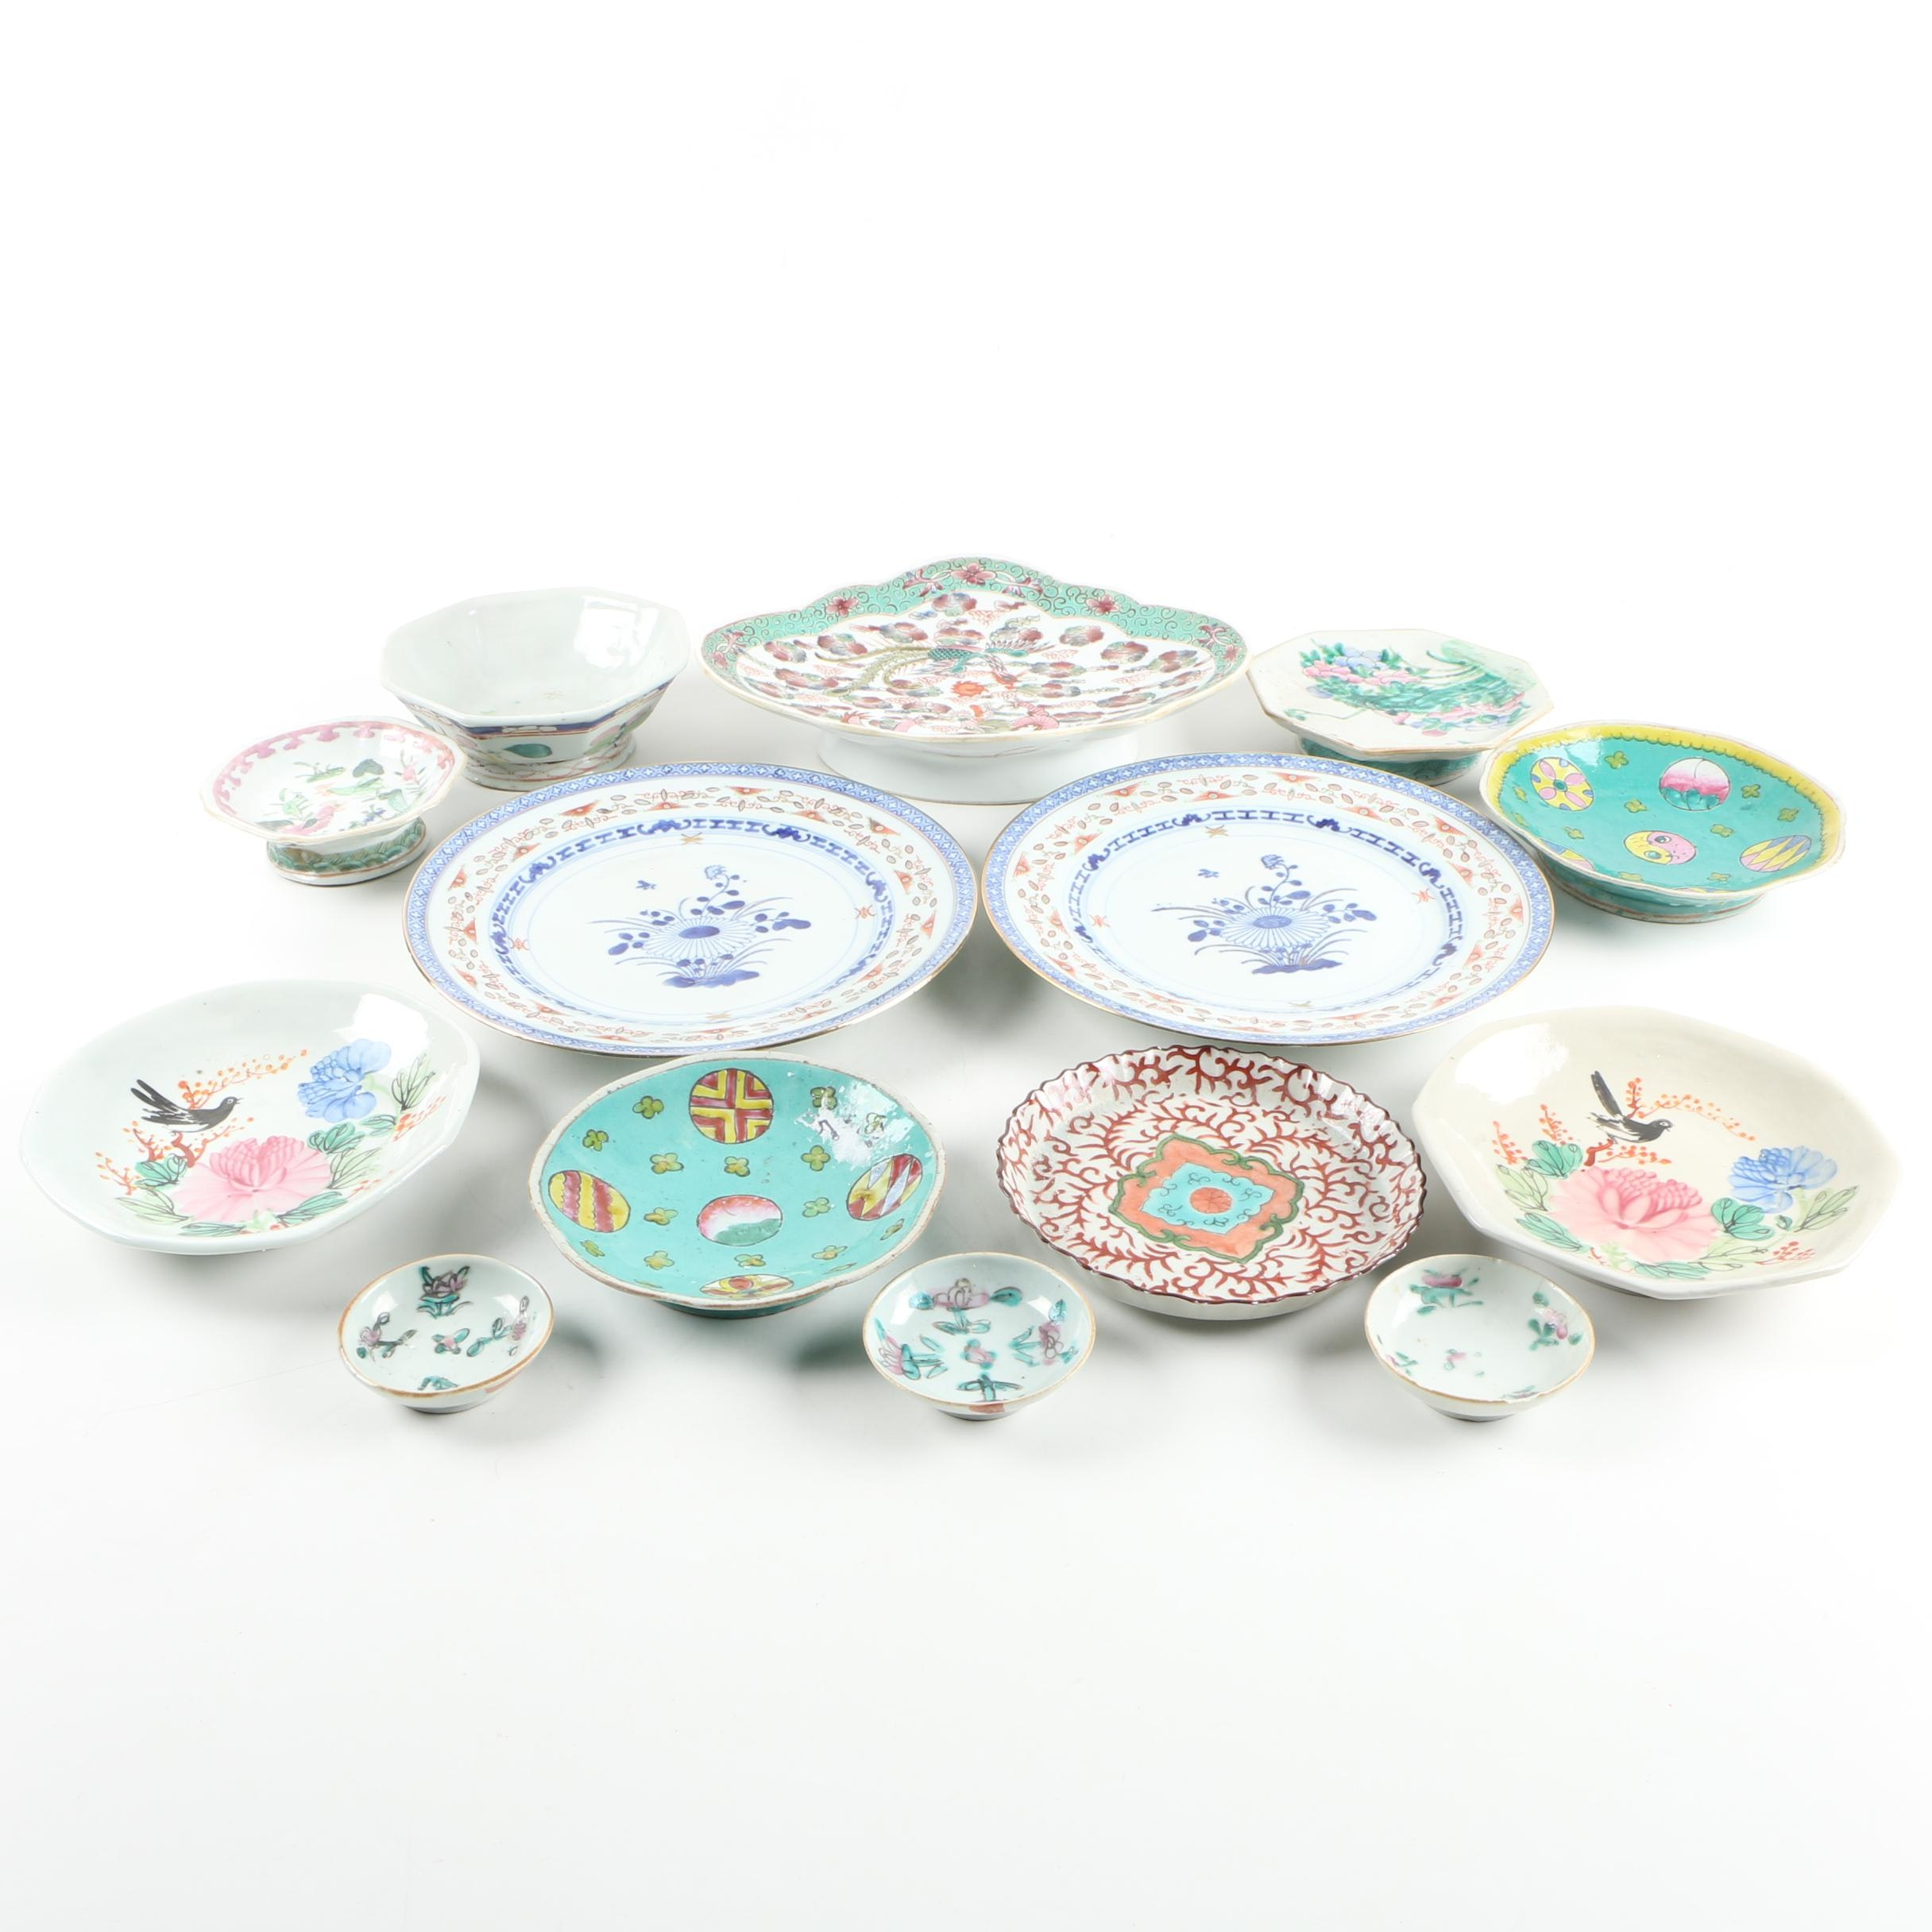 Asian Ceramic and Porcelain Plates